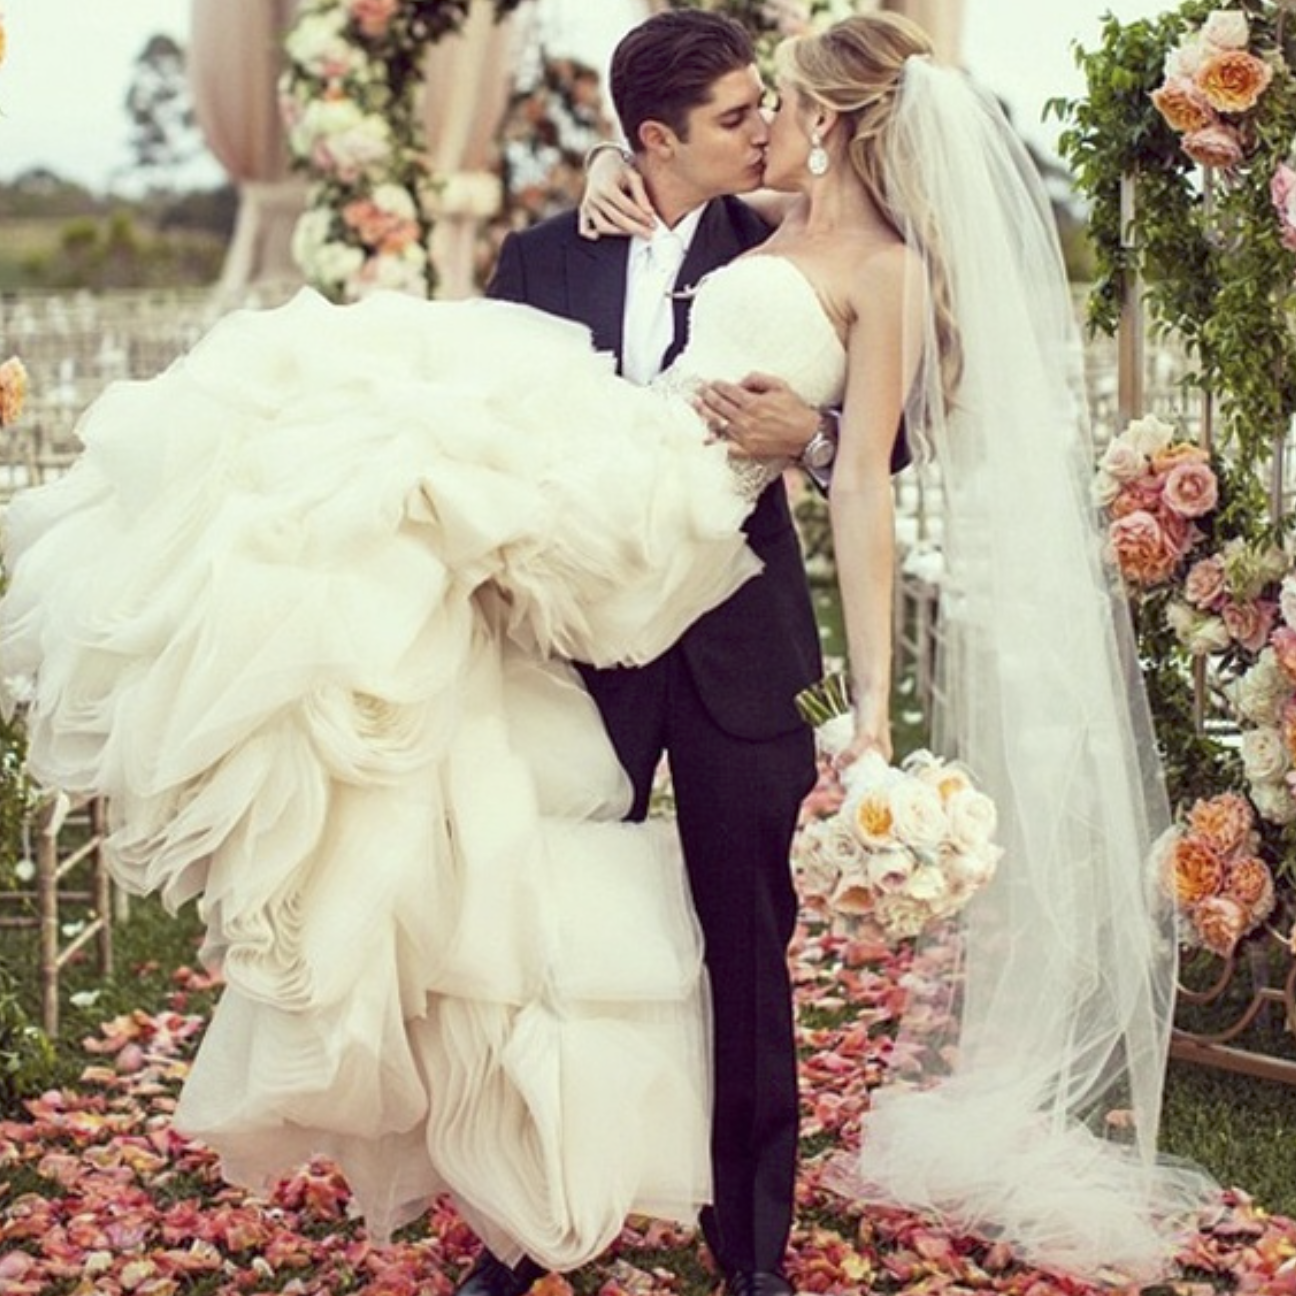 Photo: weddingpartyapp.com